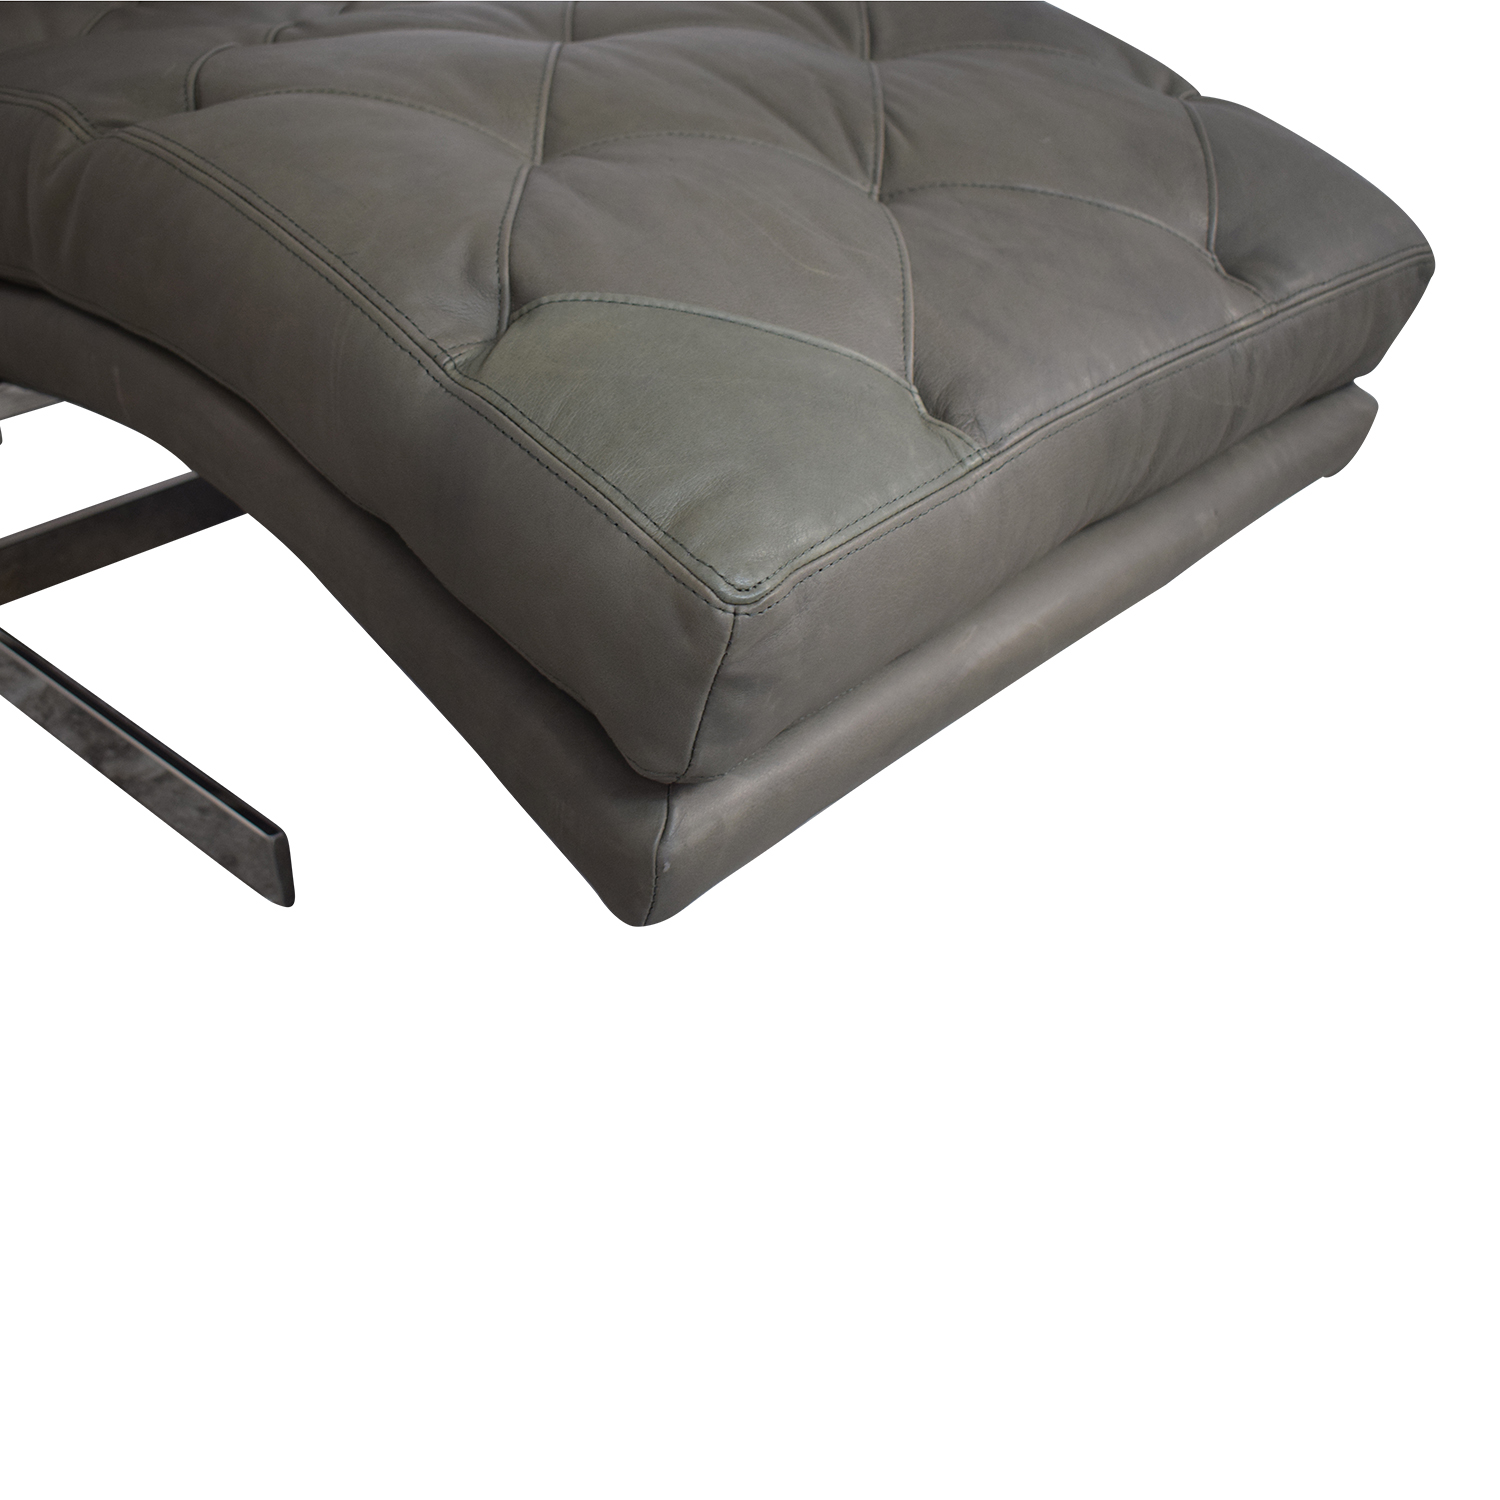 Restoration Hardware Restoration Hardware Royce Chaise dimensions